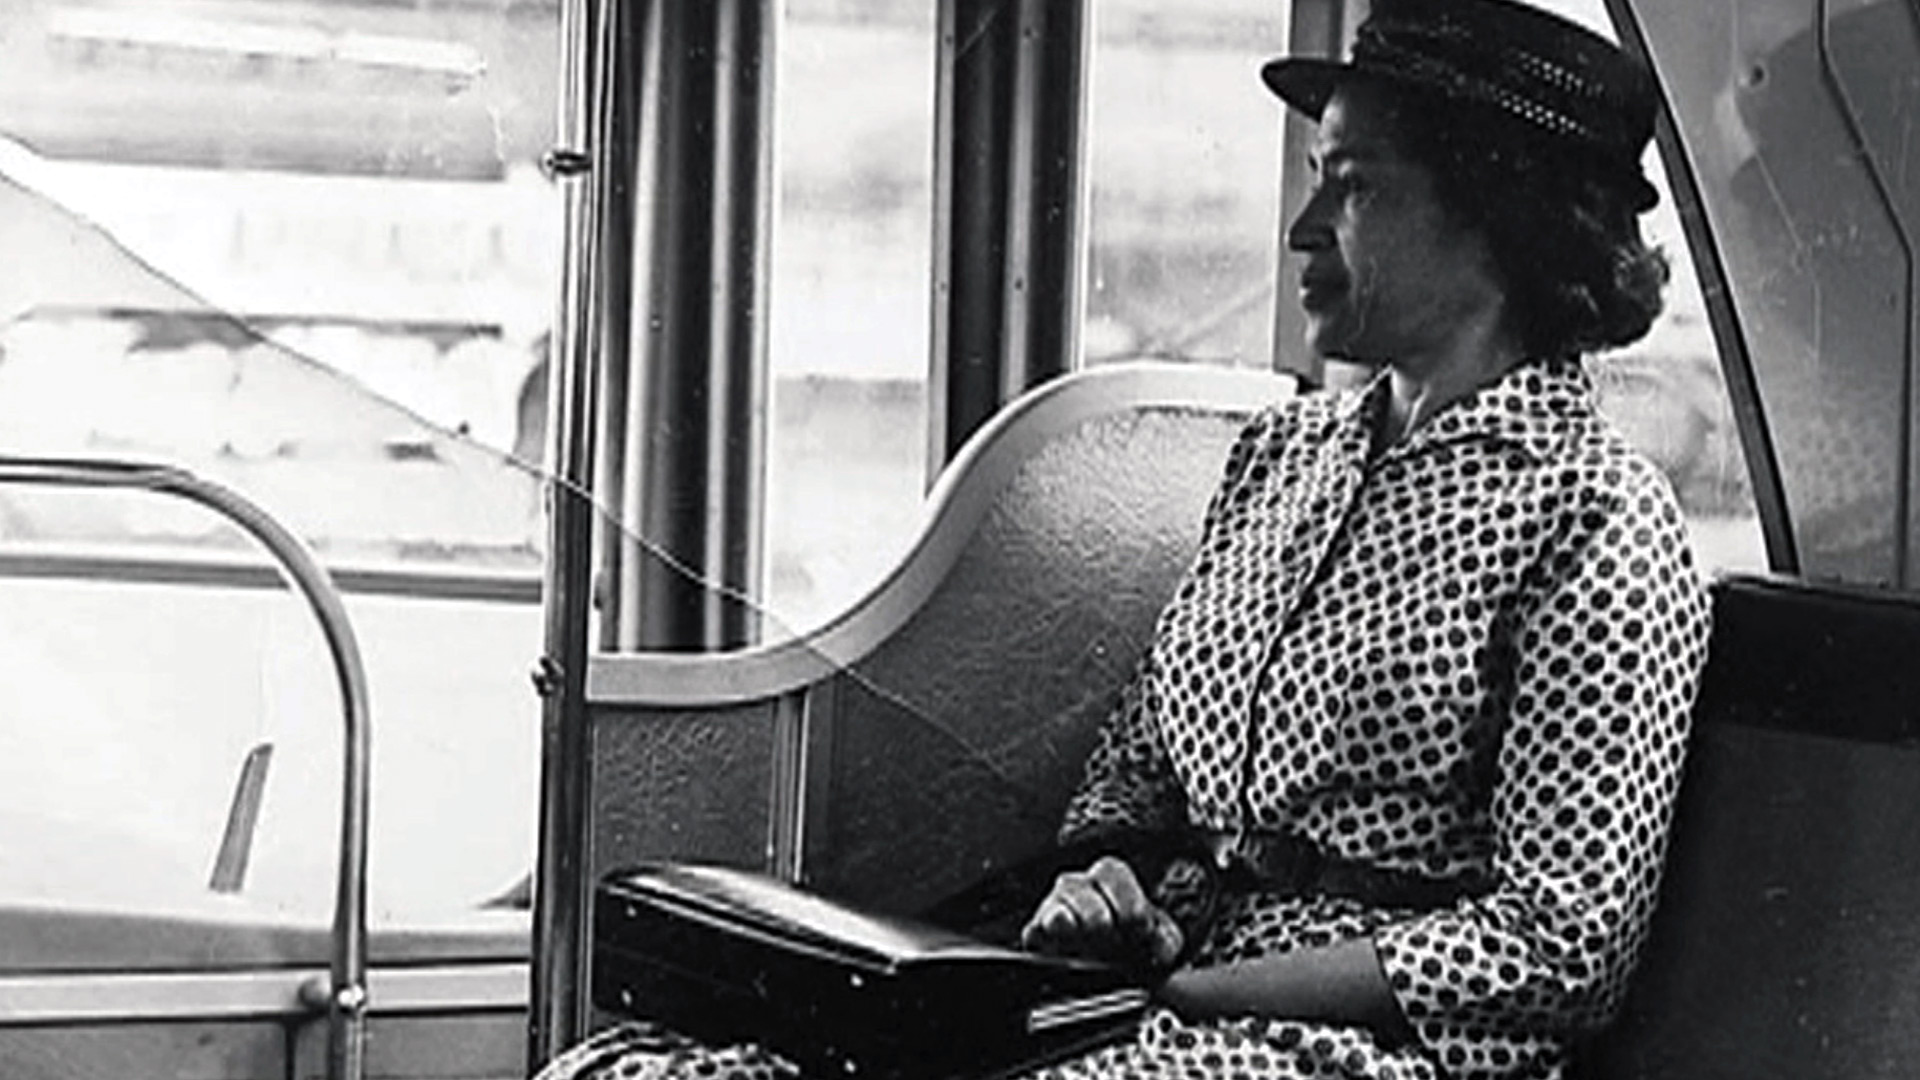 Video: The Rosa Parks Papers | Watch Religion & Ethics NewsWeekly Online | PBS Video